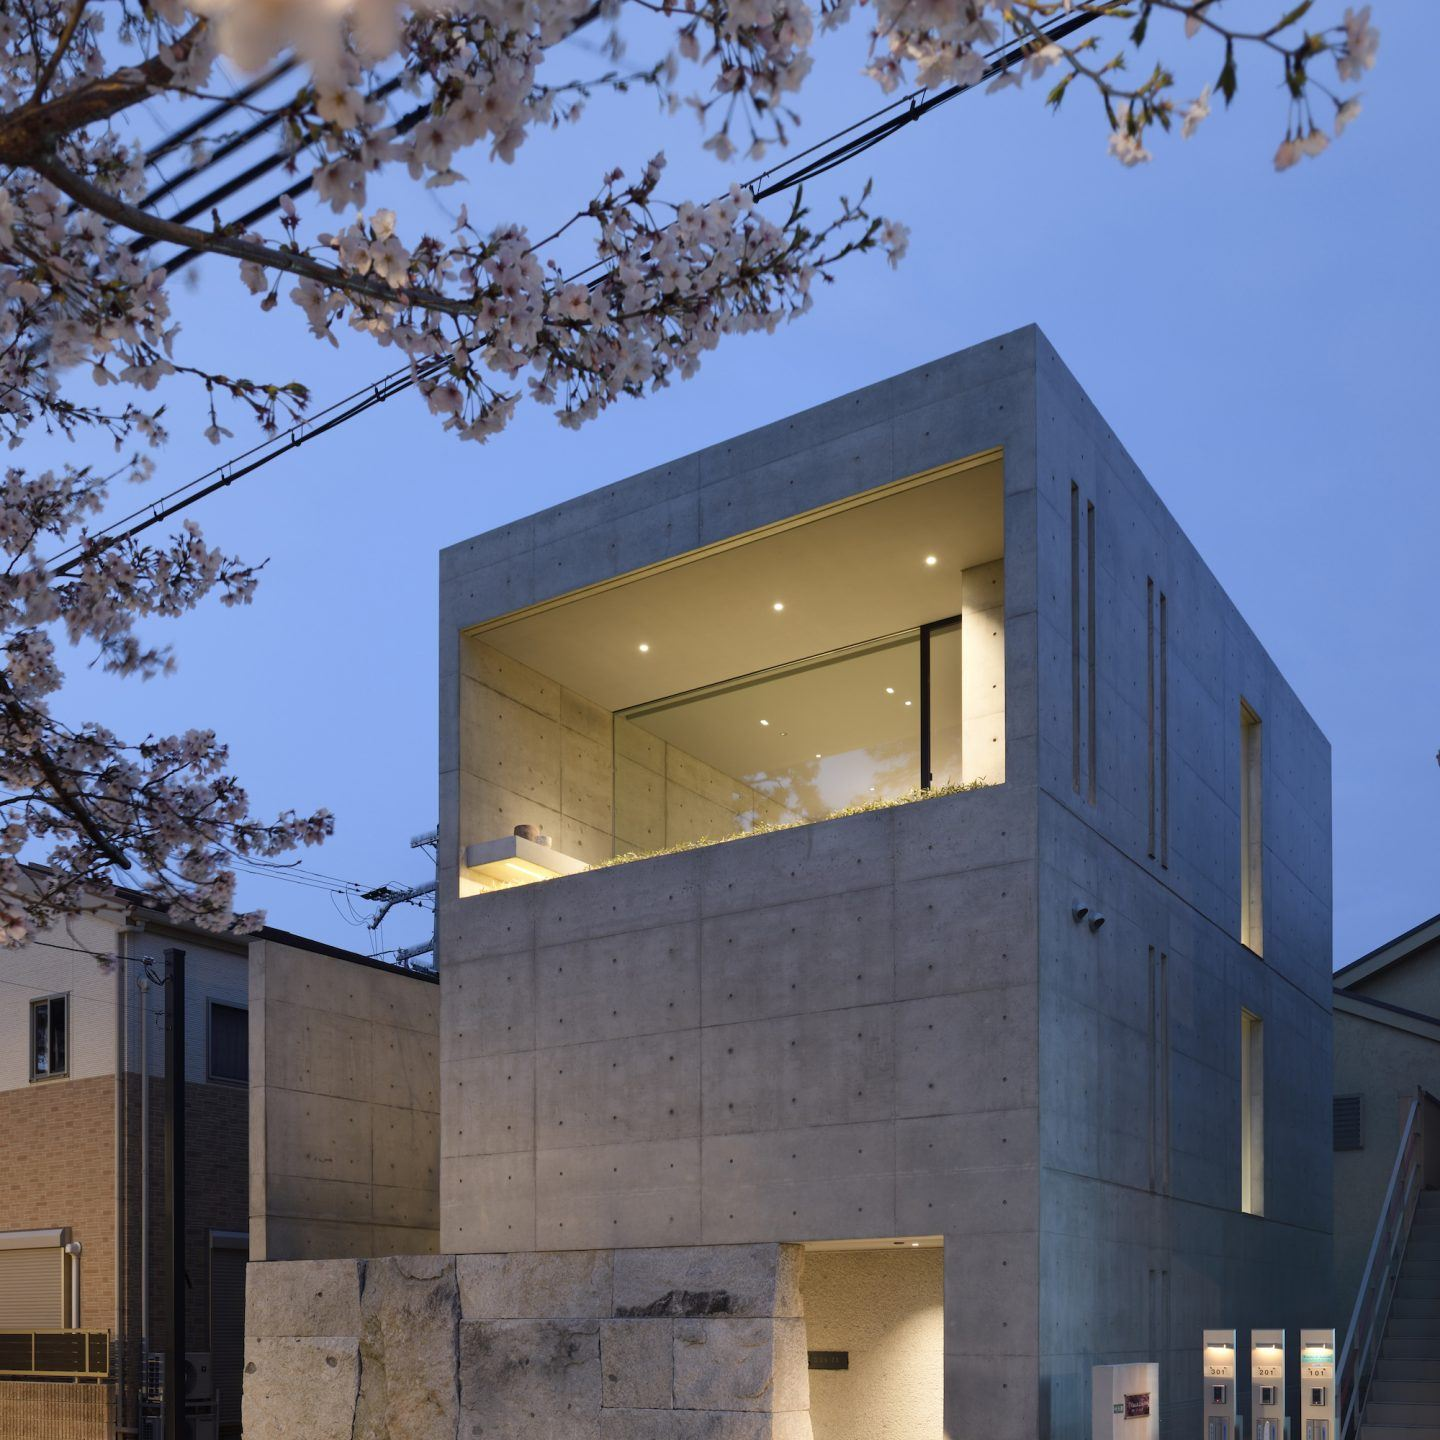 The Contemporary Brutalist Home And Office Of Japanese Architect Go Fujita  - IGNANT